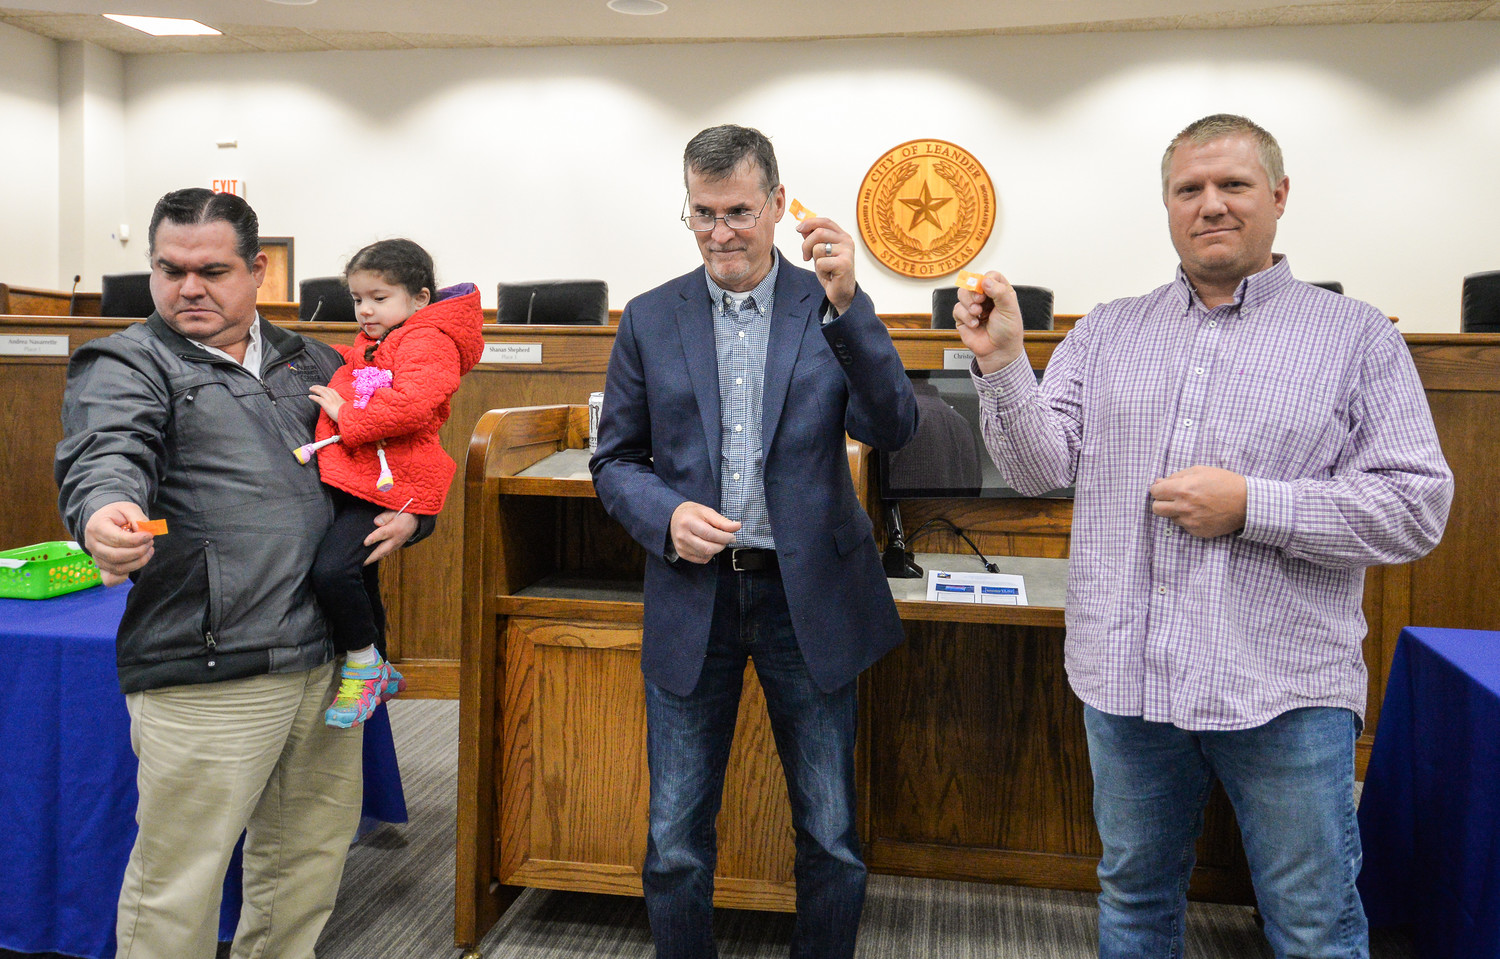 City of Leander mayoral candidates (left to right) Vic Villarreal, Troy Hill and Adam Benefield drew straws for ballot position at the Leander City Council chamber on February 22